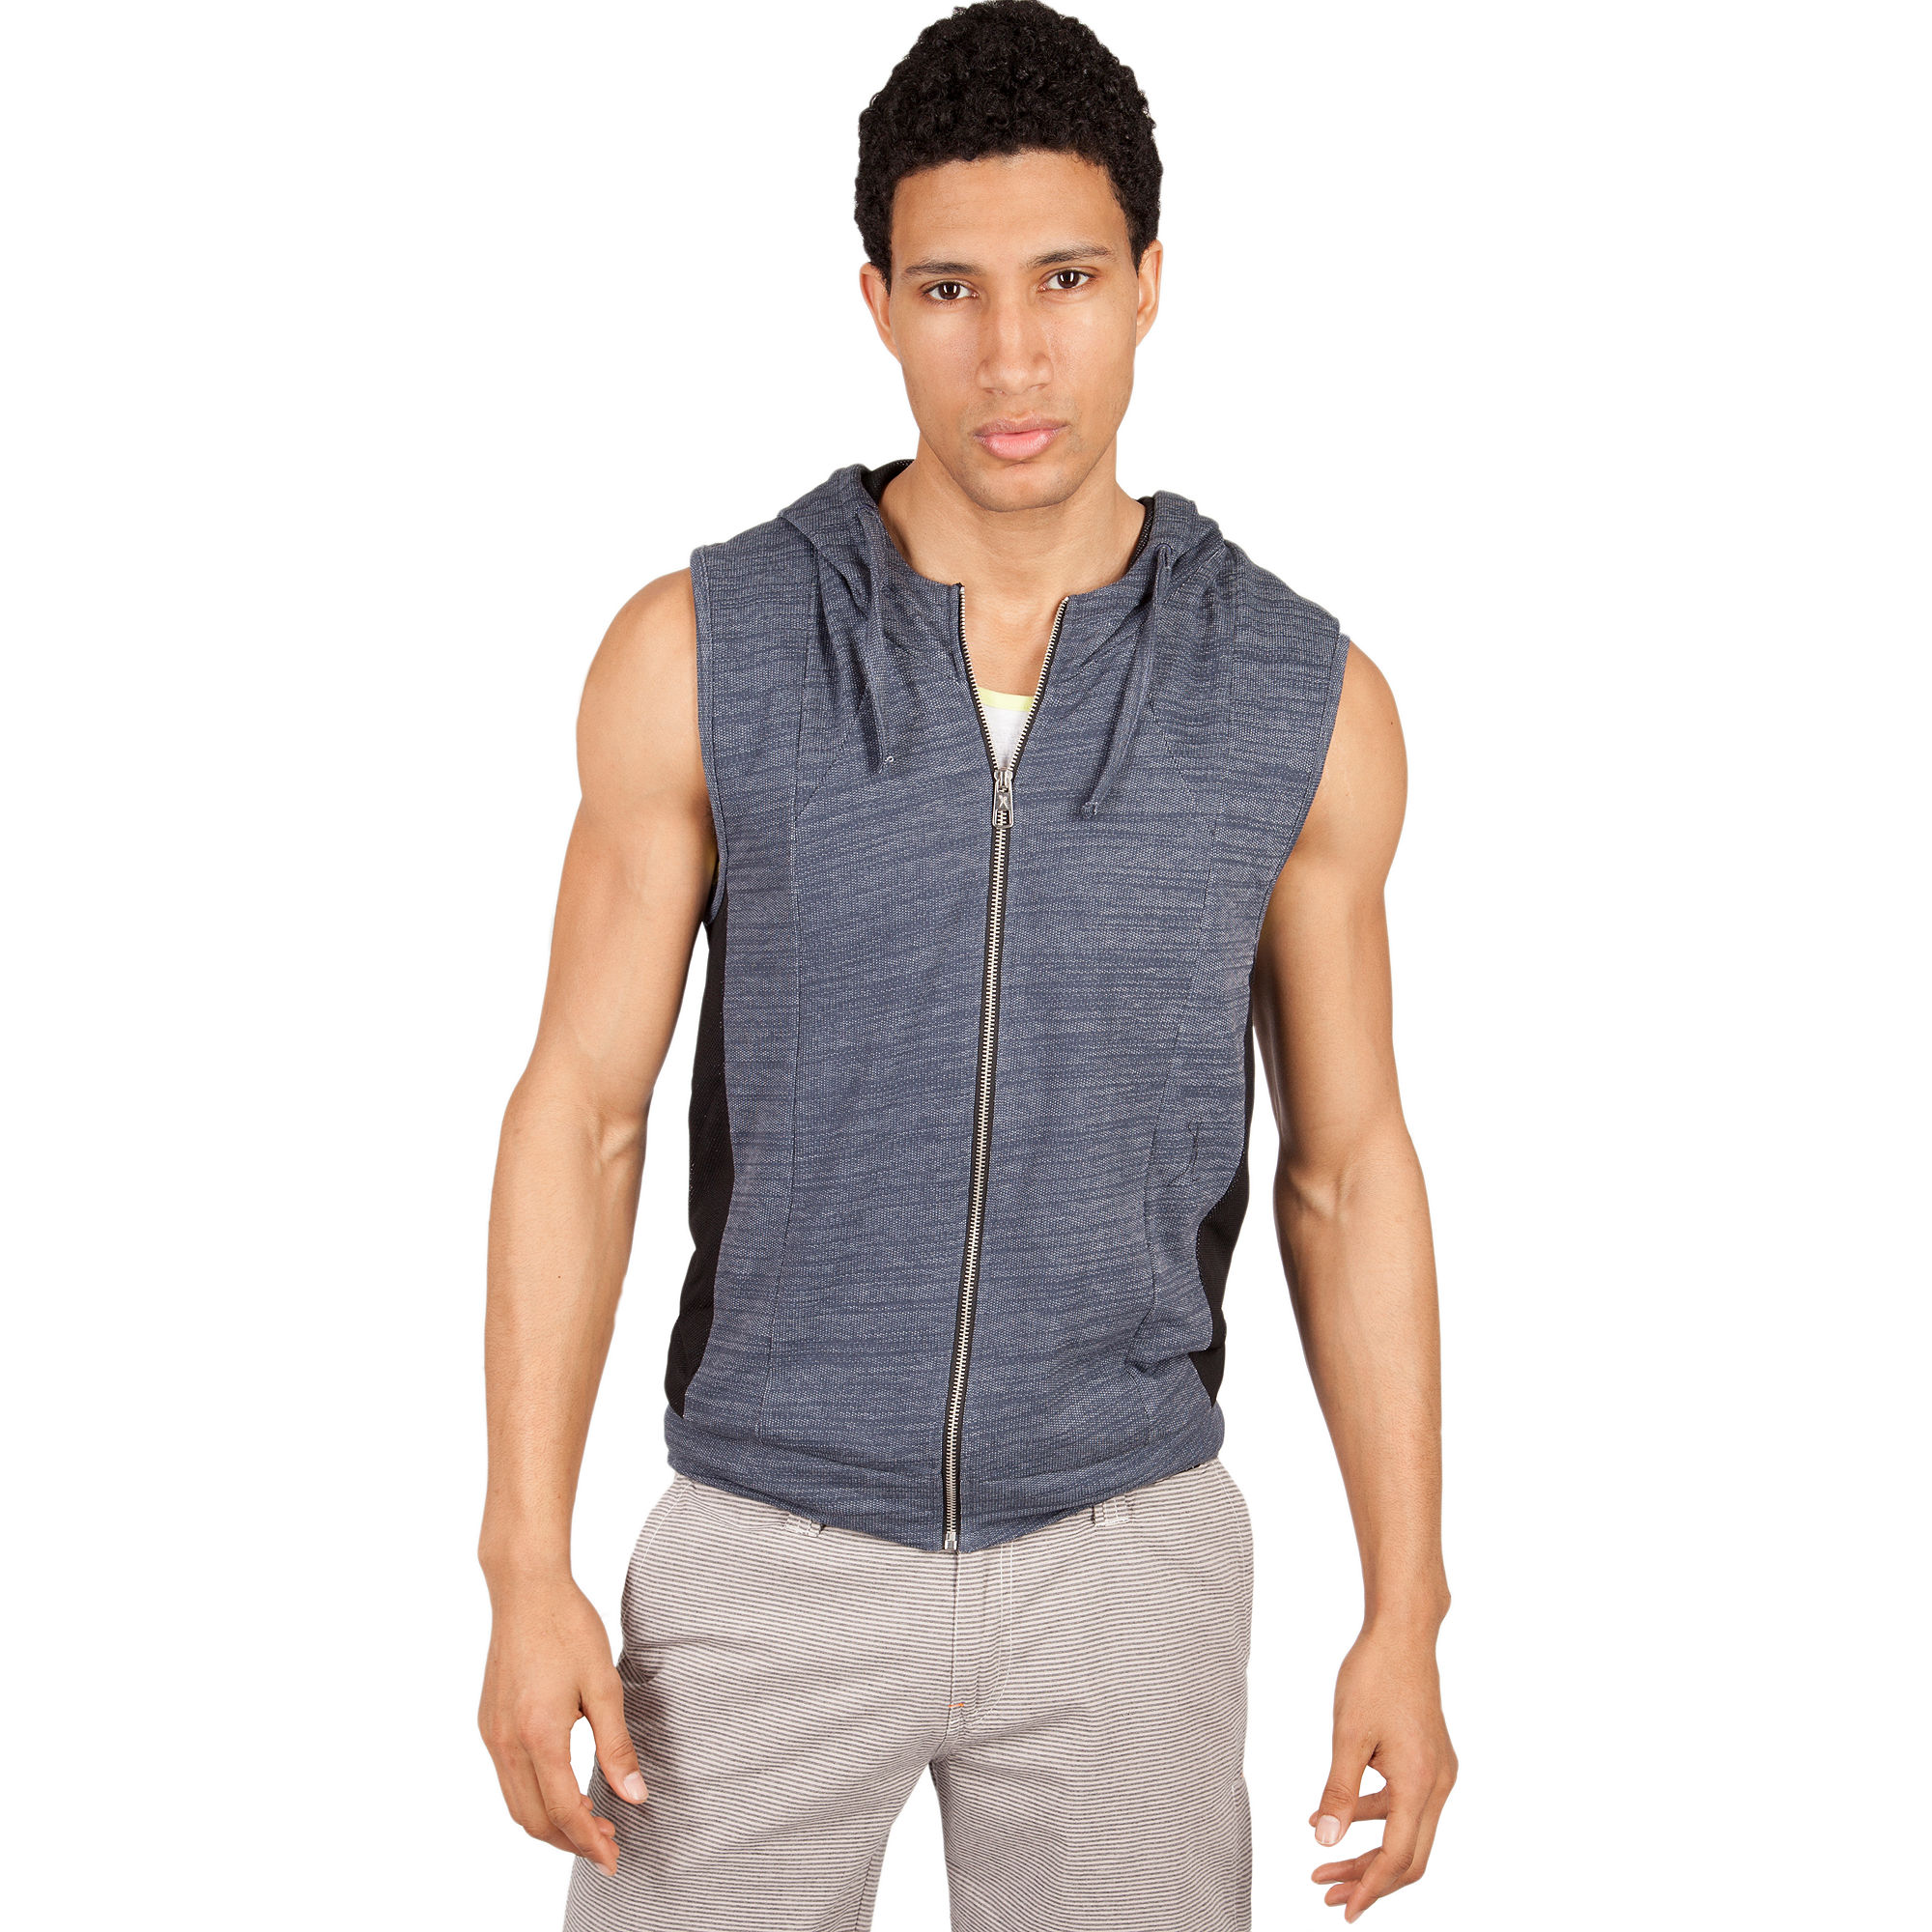 Marc ecko estranged hoodie in gray for men lyst for Marc ecko dress shirts